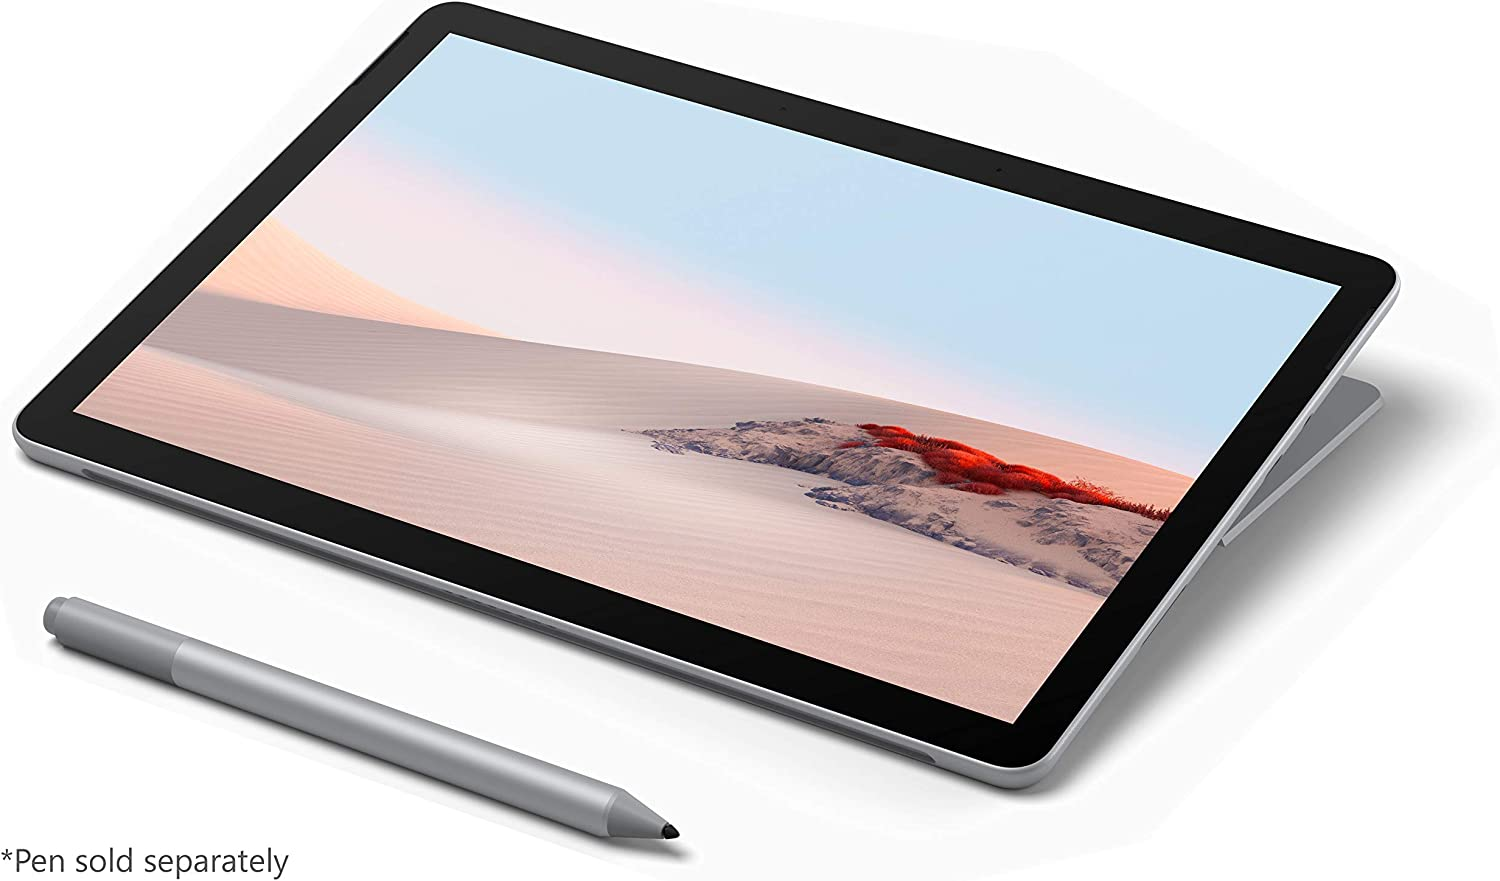 microsoft surface go 2 with stylus pen